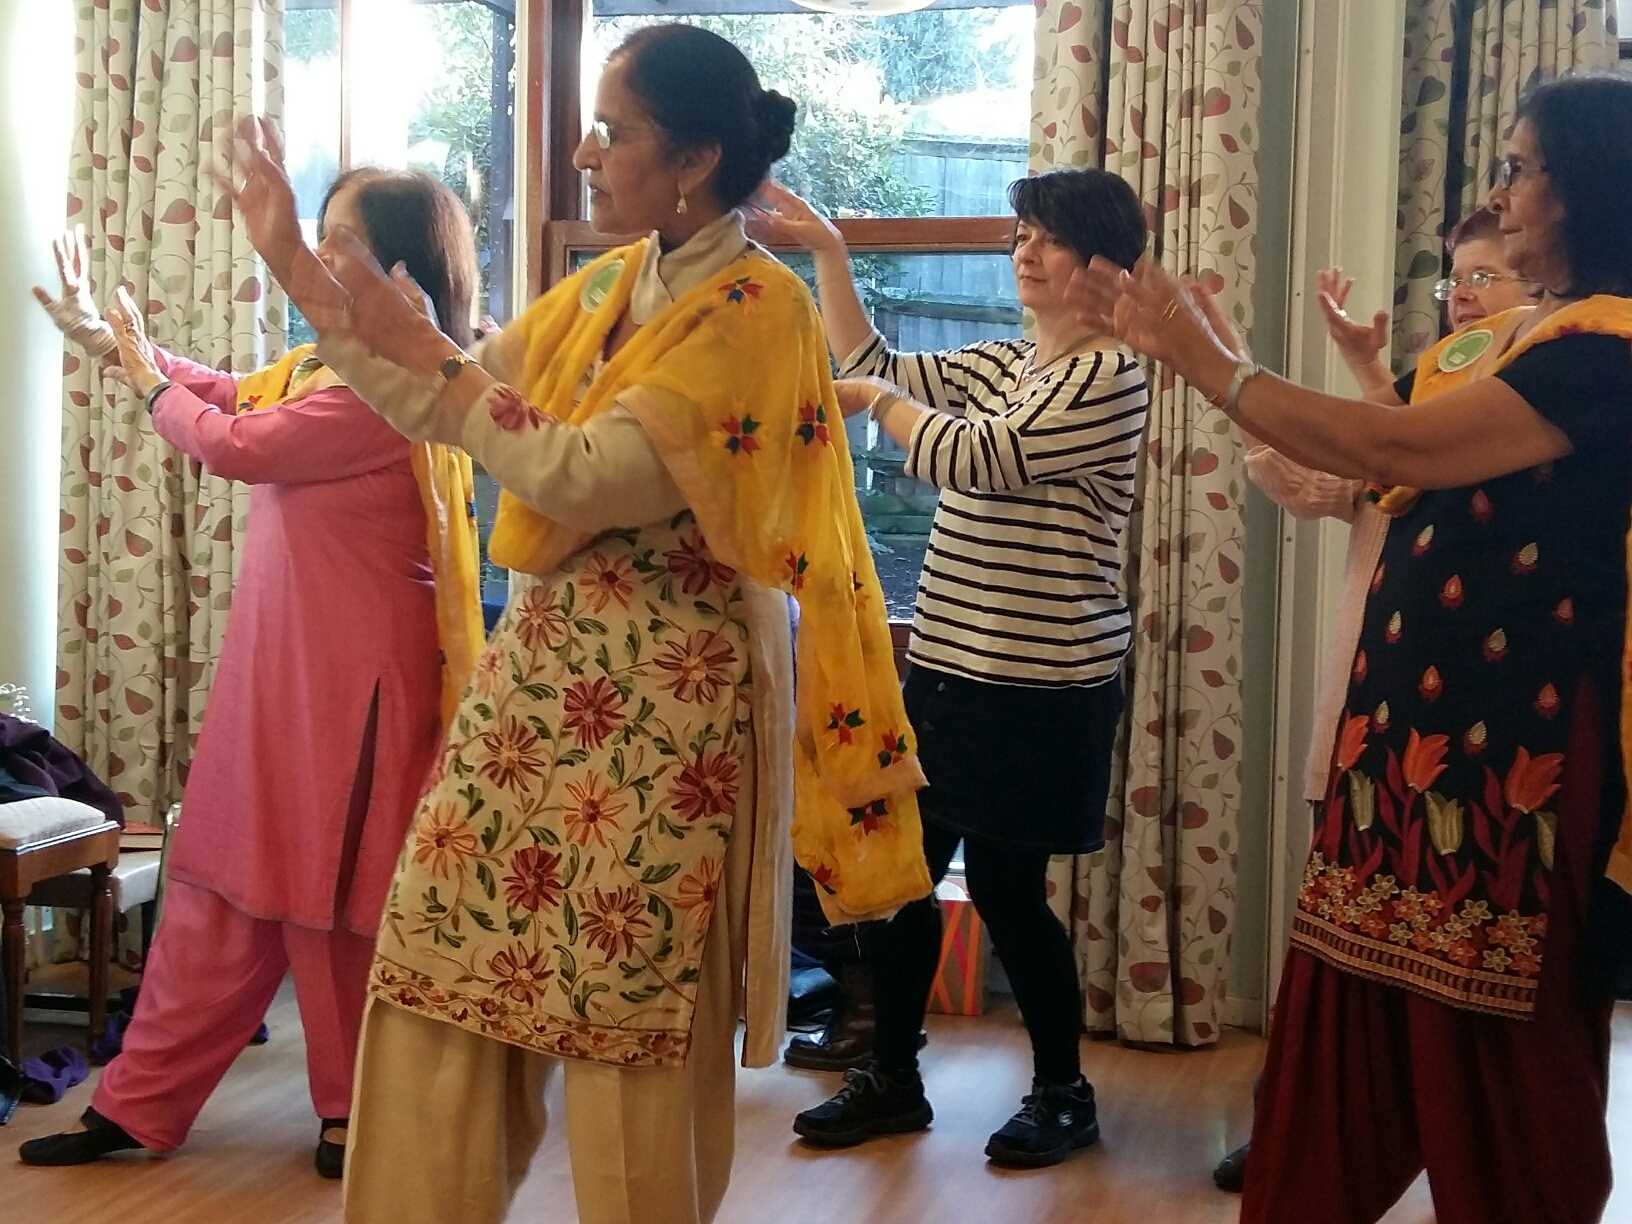 Wembley's Bollywood Mitzvah Day